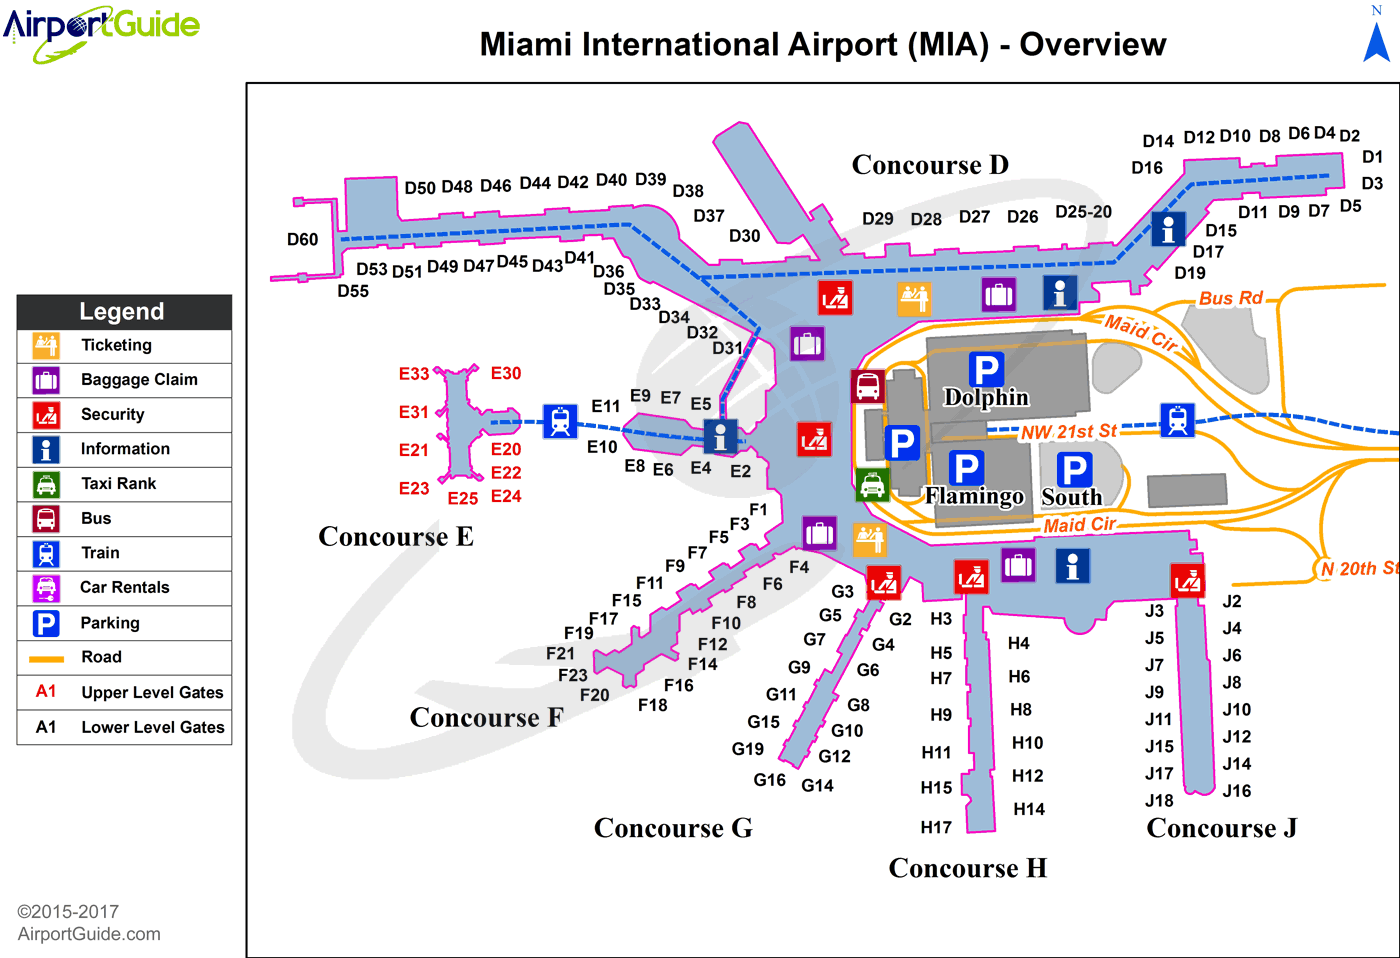 miami airport gate map Miami Miami International Mia Airport Terminal Map Overview Airport Map Airport Guide Airport miami airport gate map